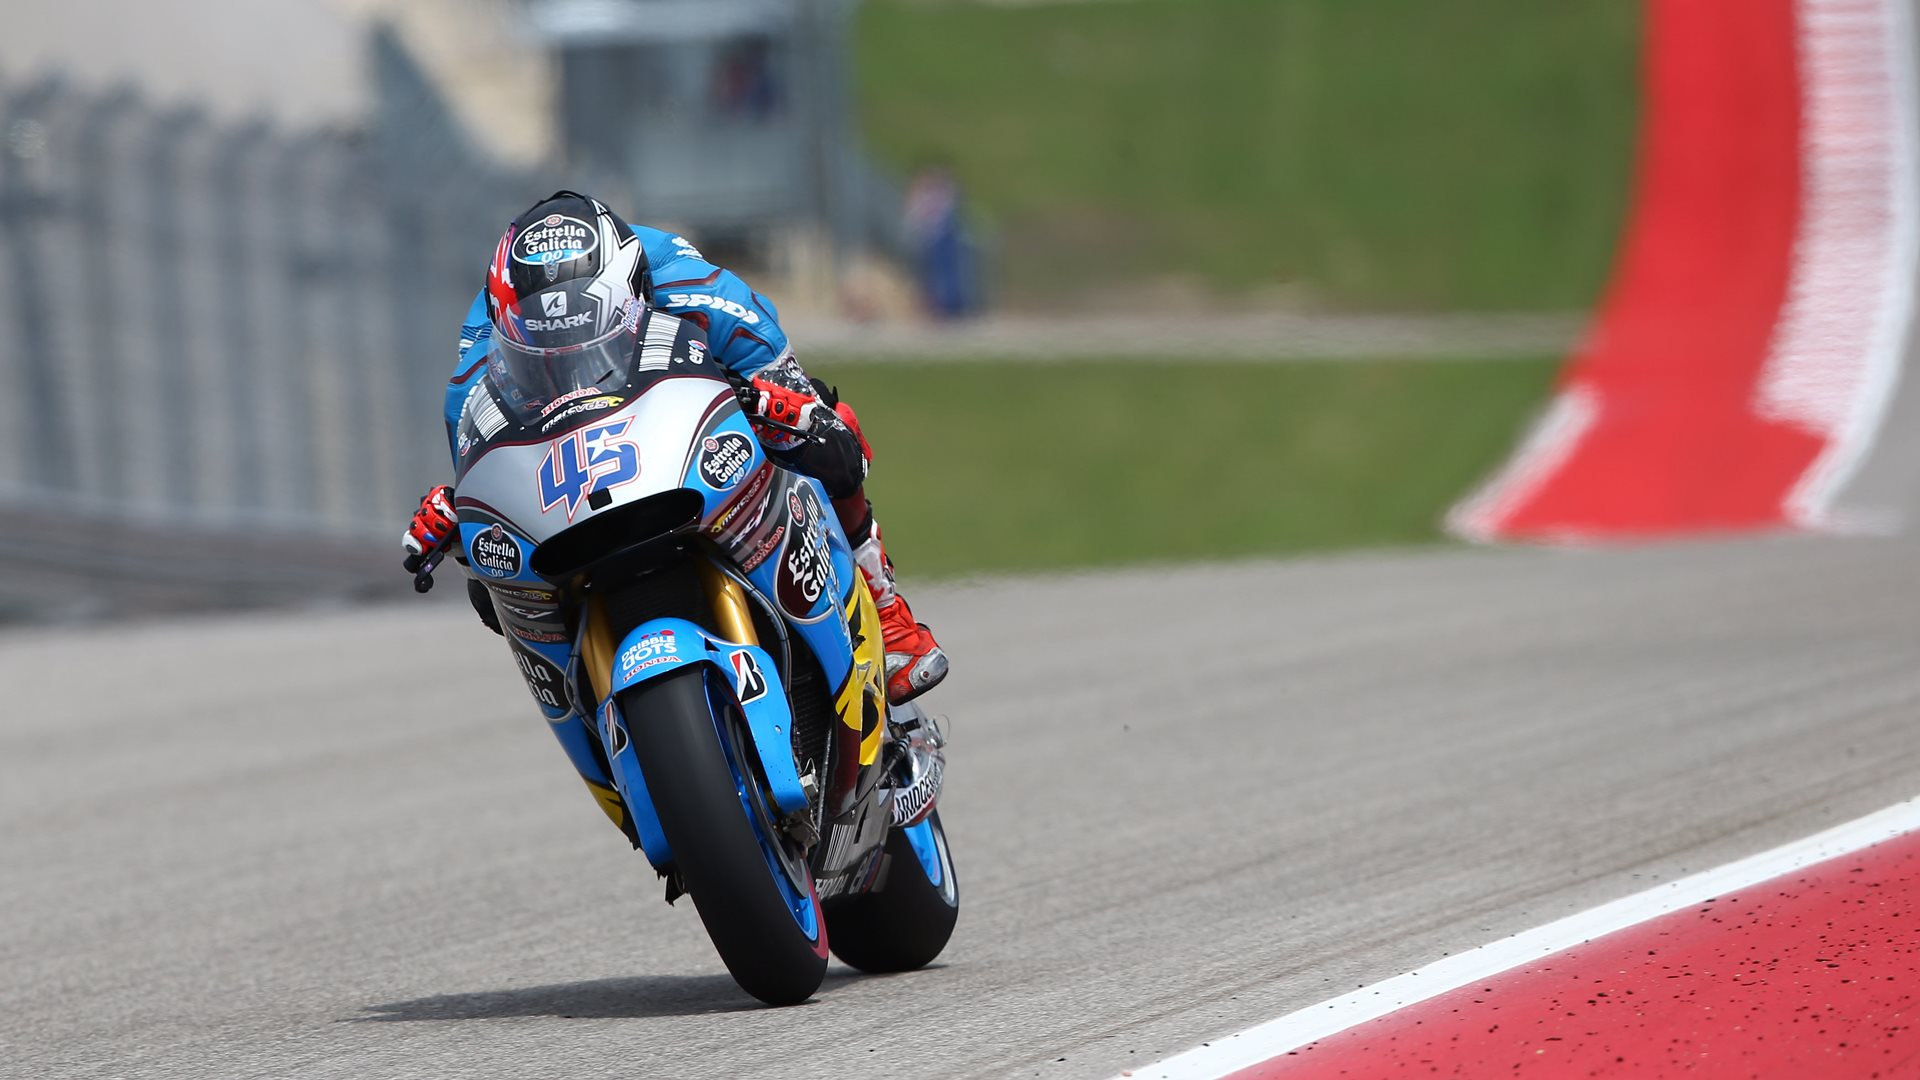 Scott Redding HD wallpaper - MotoGP COTA Austin Texas